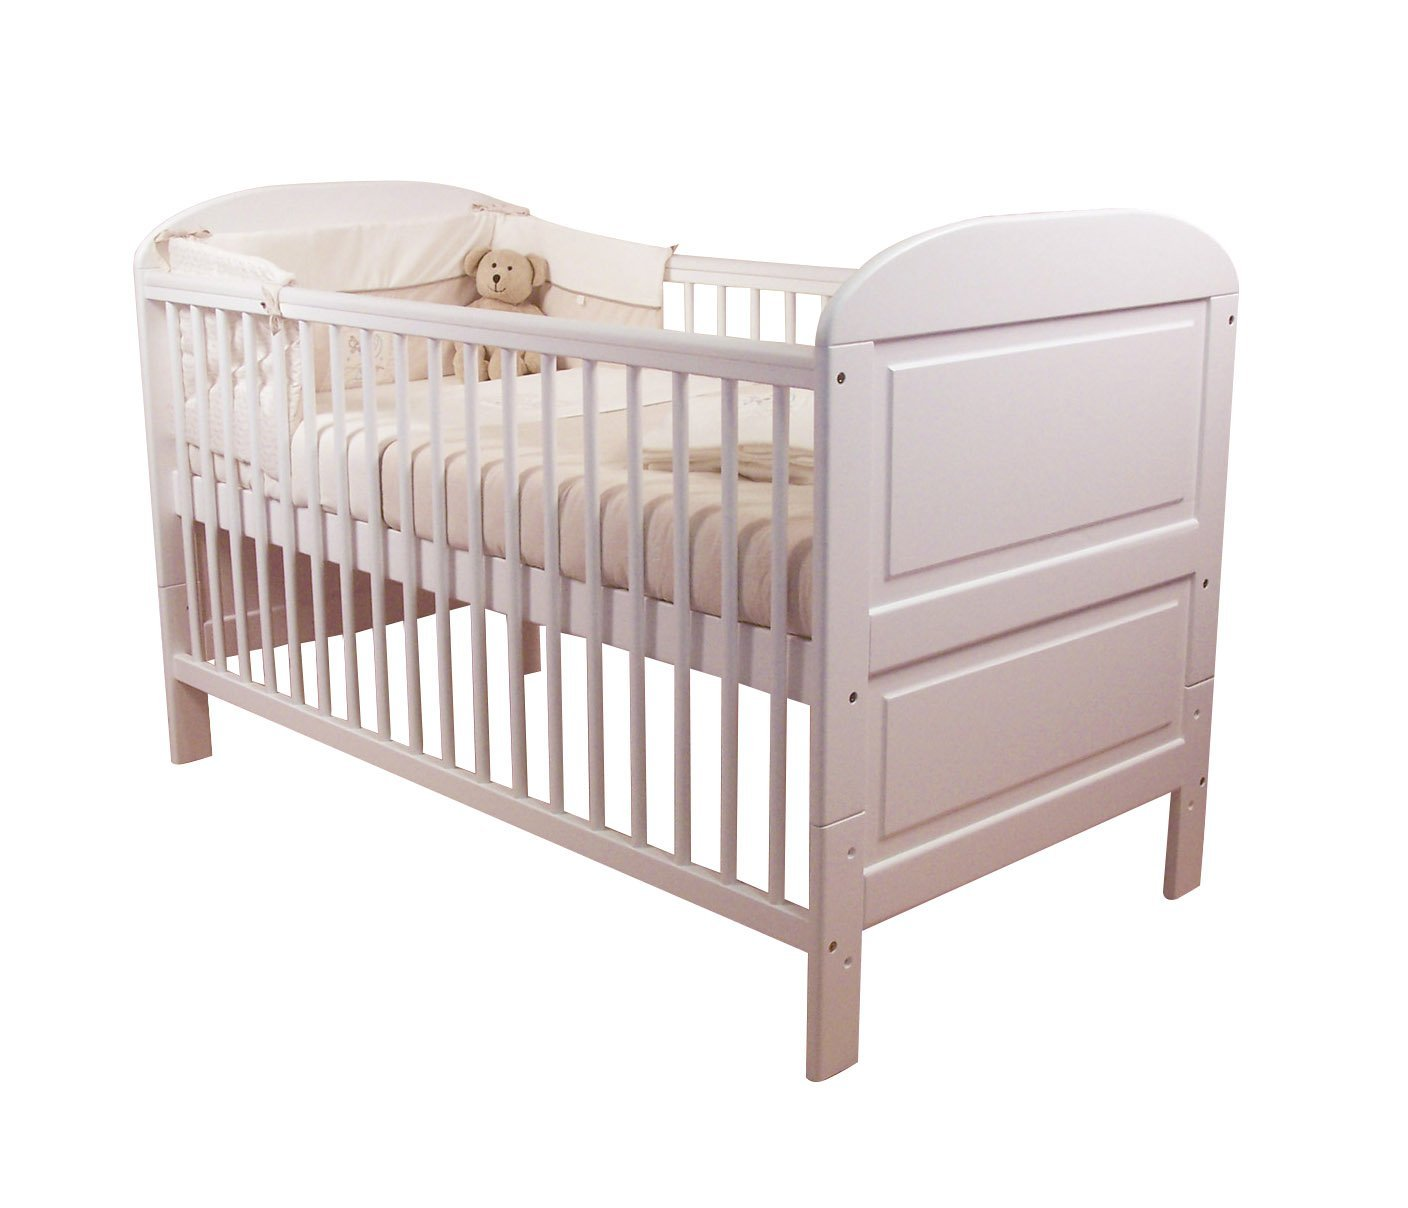 Cot Baby East Coast Angelina Cot Bed Wooden Baby Bed Furniture